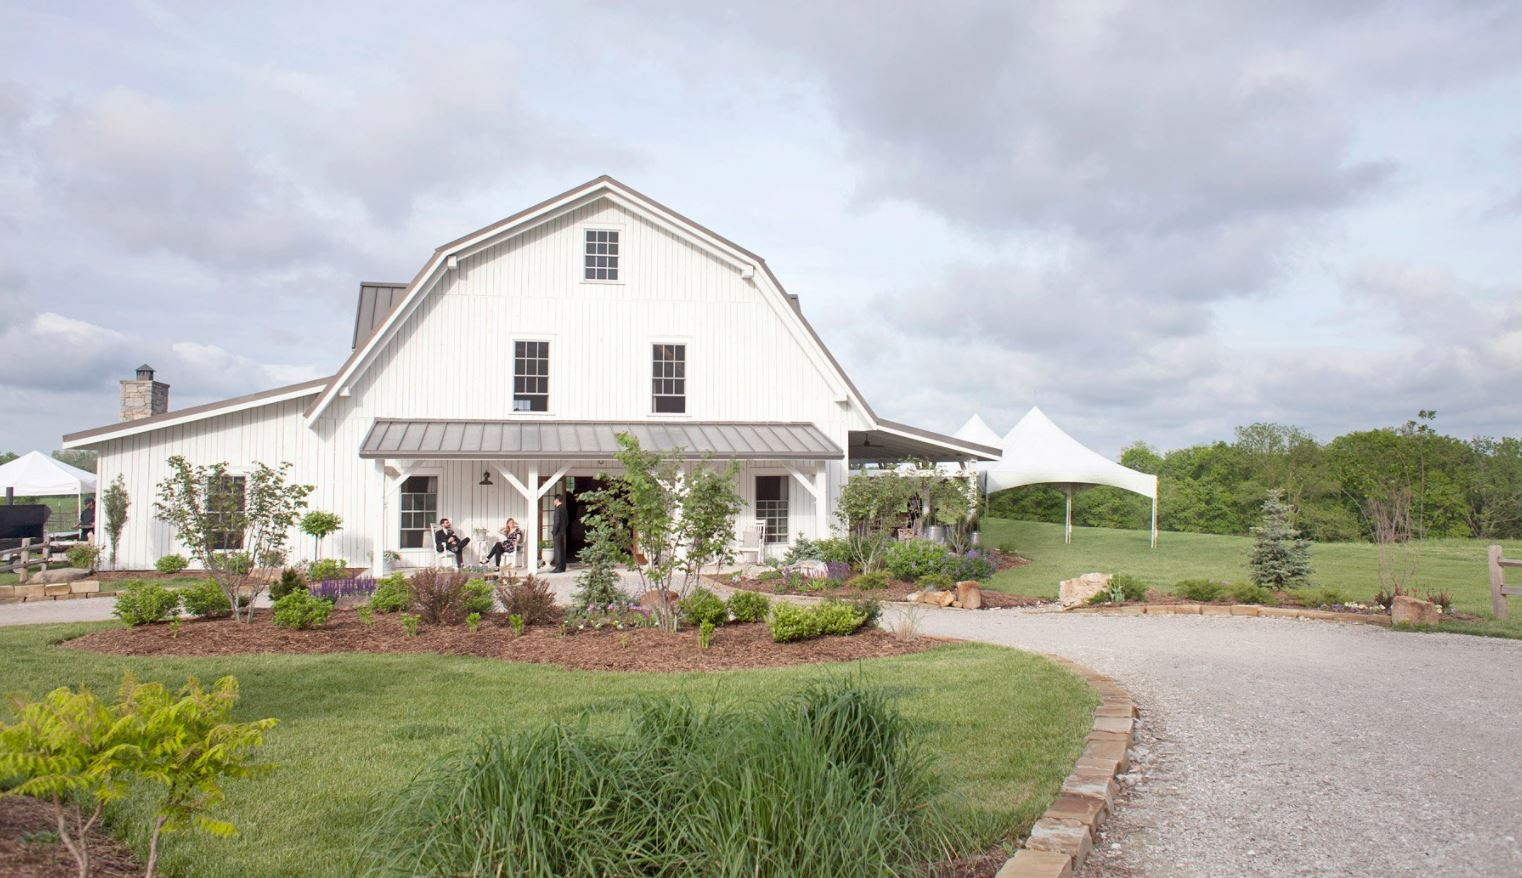 the Blue Bell Farm is located in Fayette, Missouri.